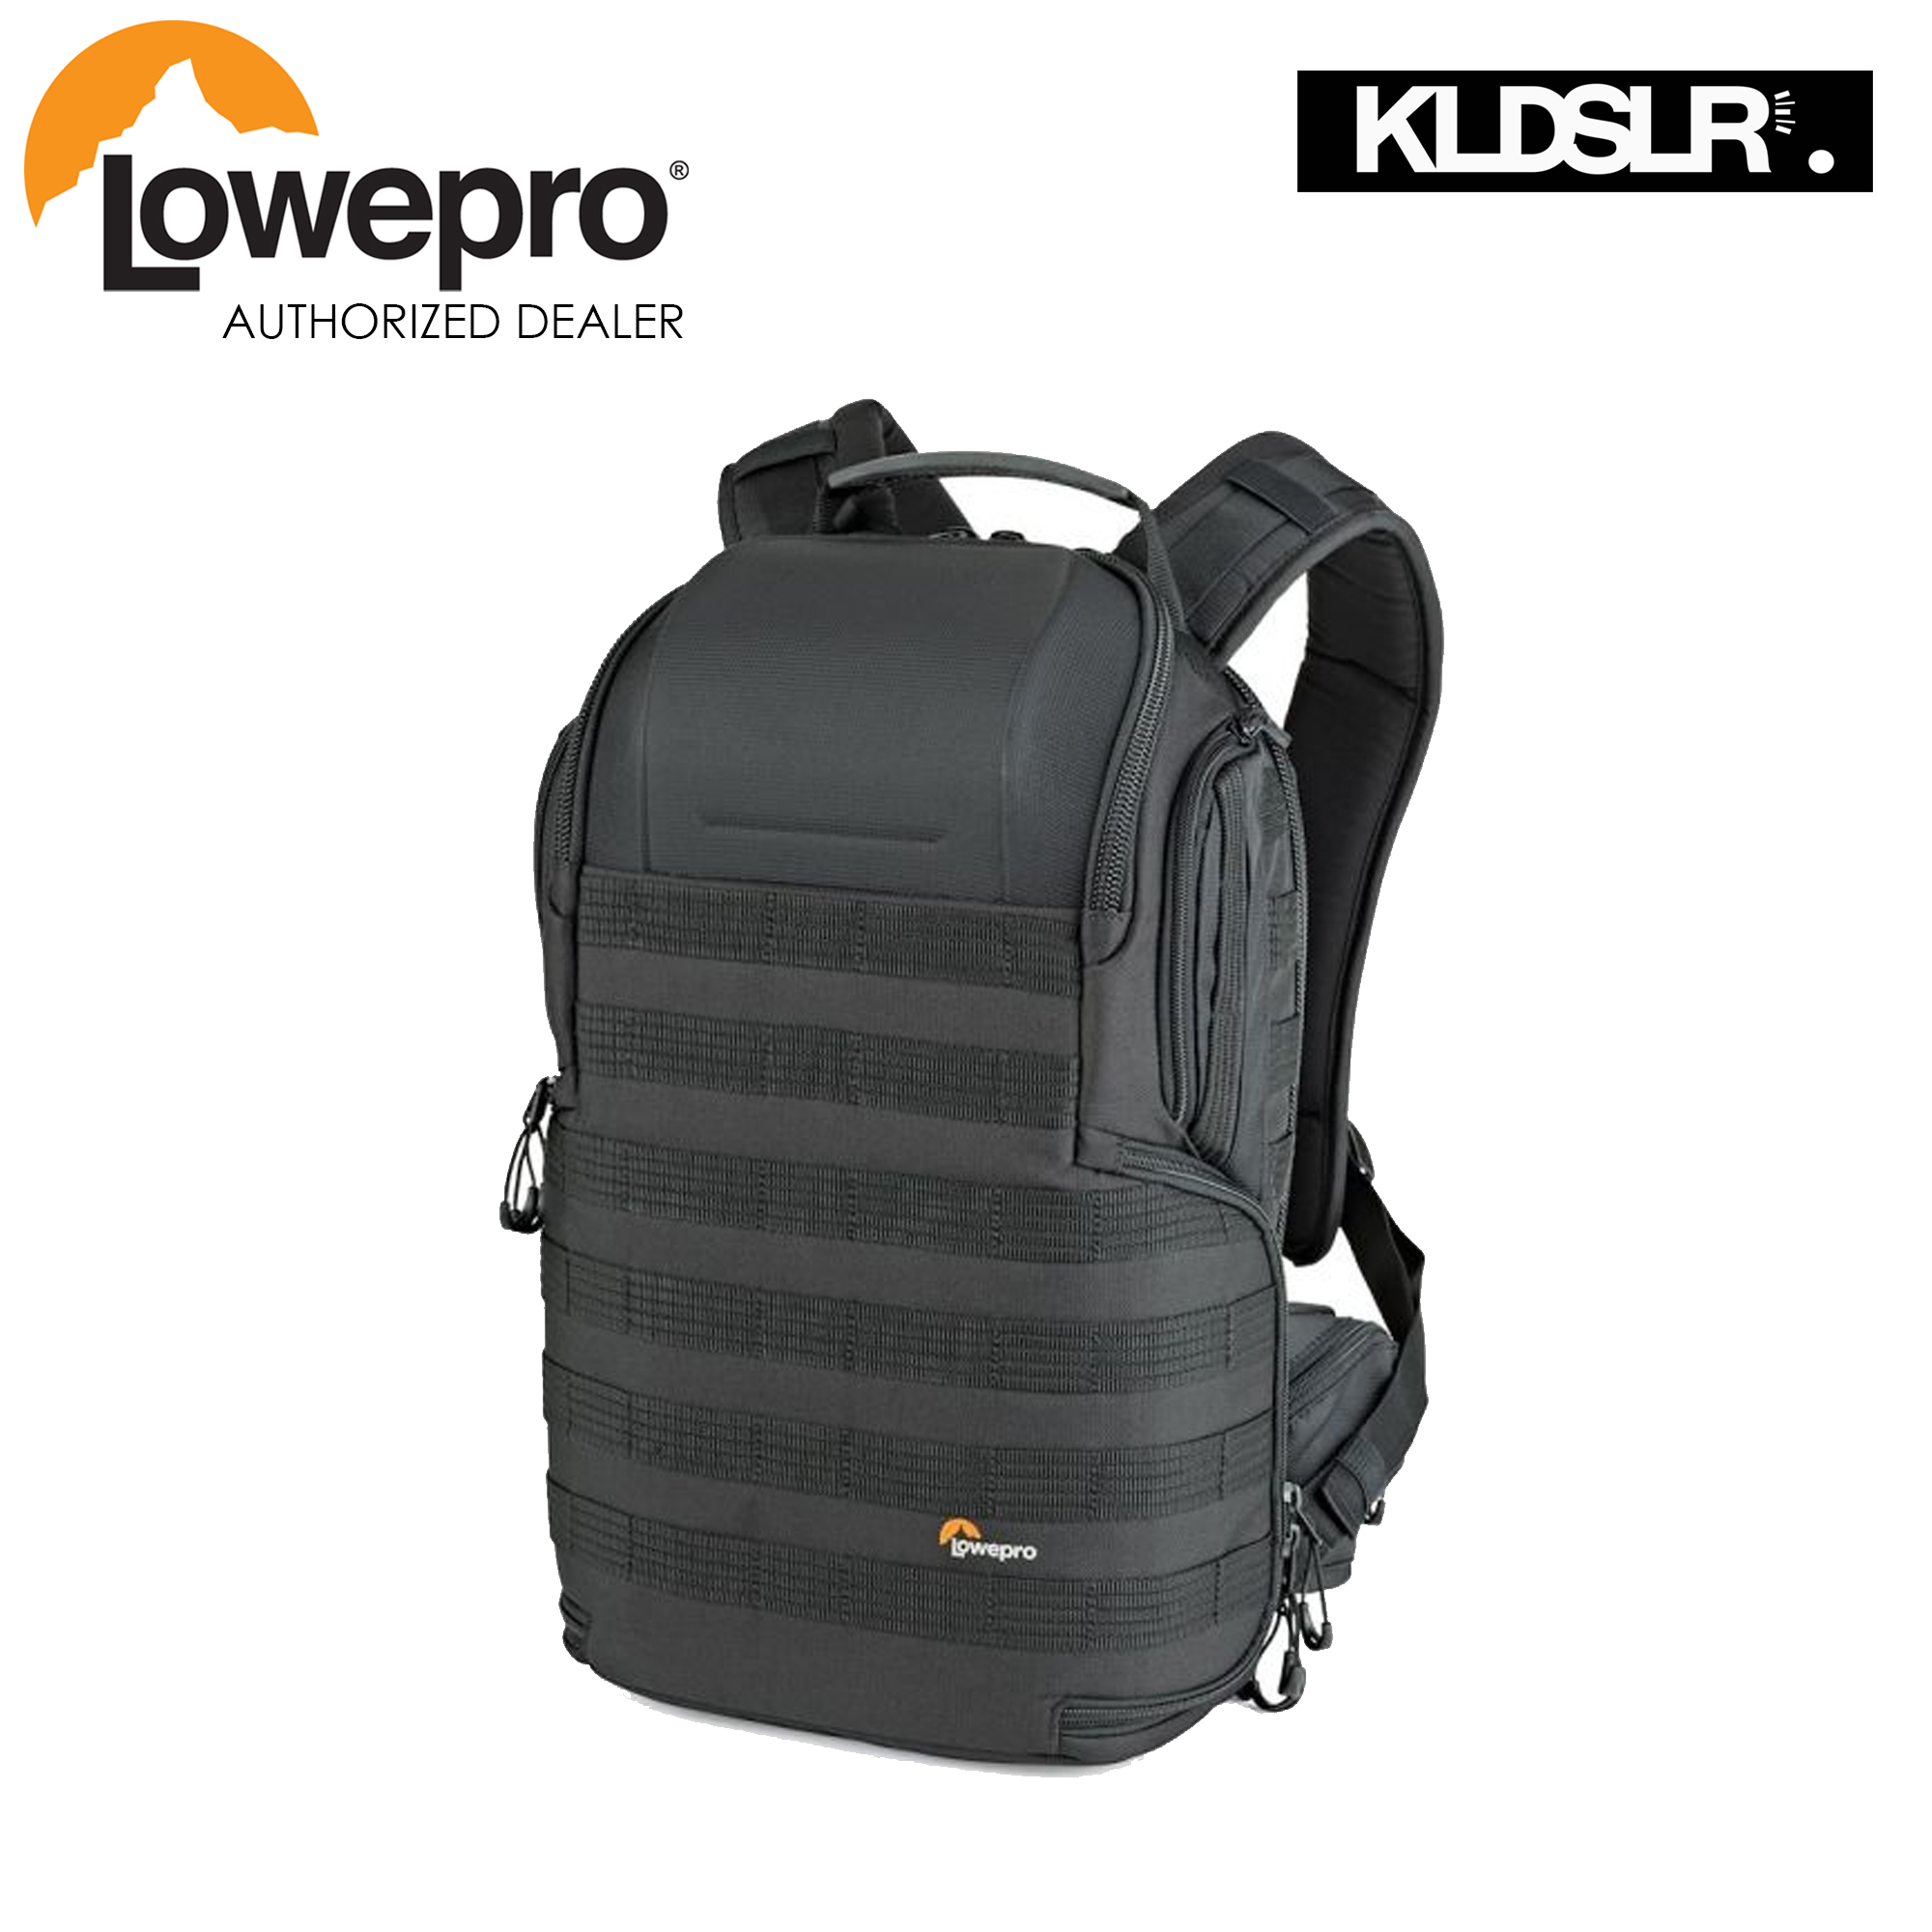 Lowepro ProTactic 350 AW II Camera and Laptop Backpack (Black)  (Lowepro Malaysia)